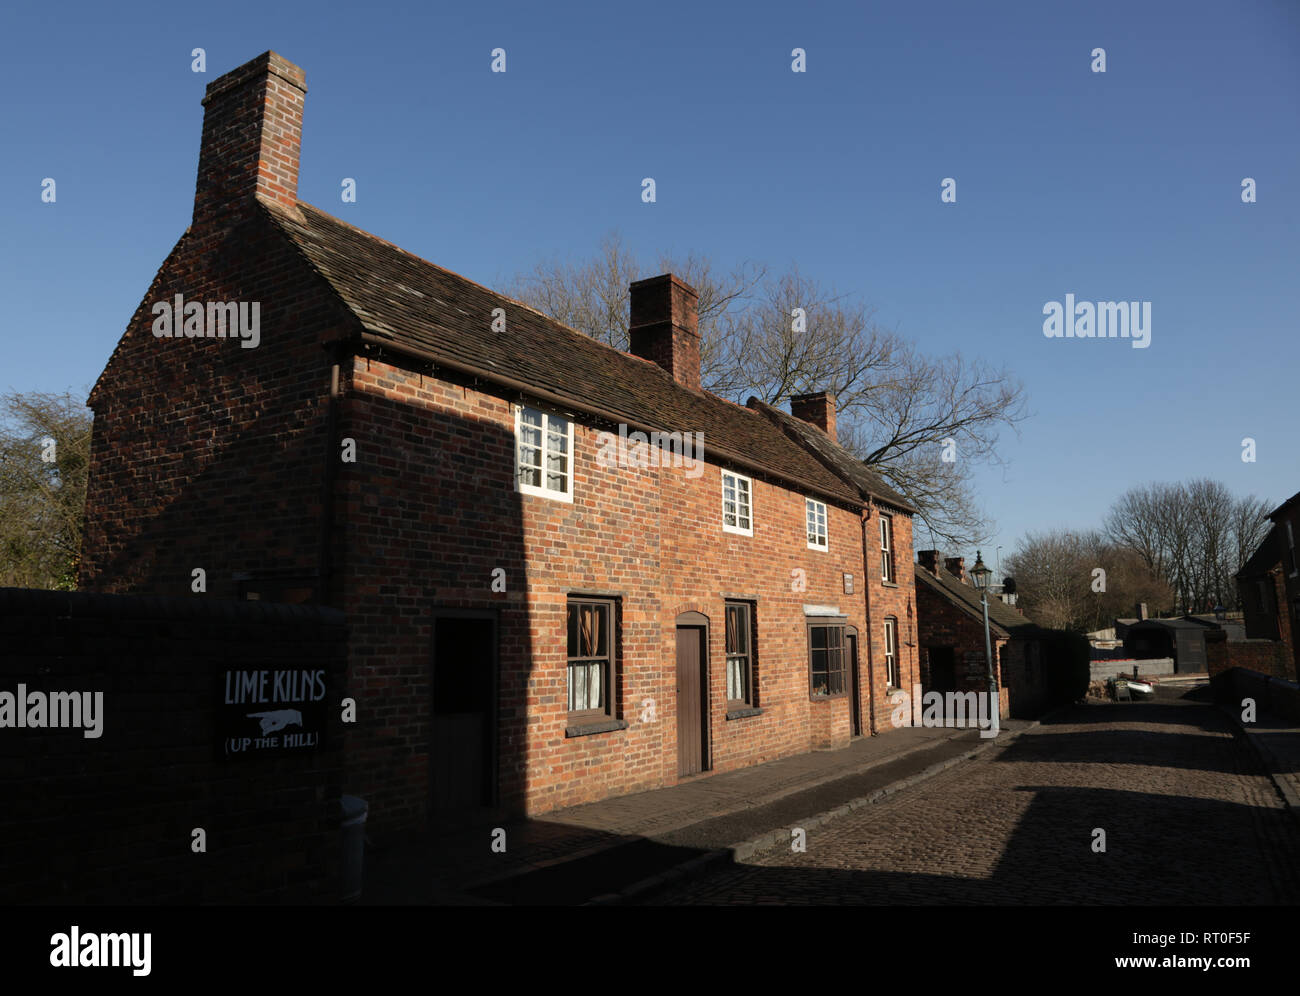 A row of cottages at the Black country living museum, Dudley, West midlands, England, UK. - Stock Image